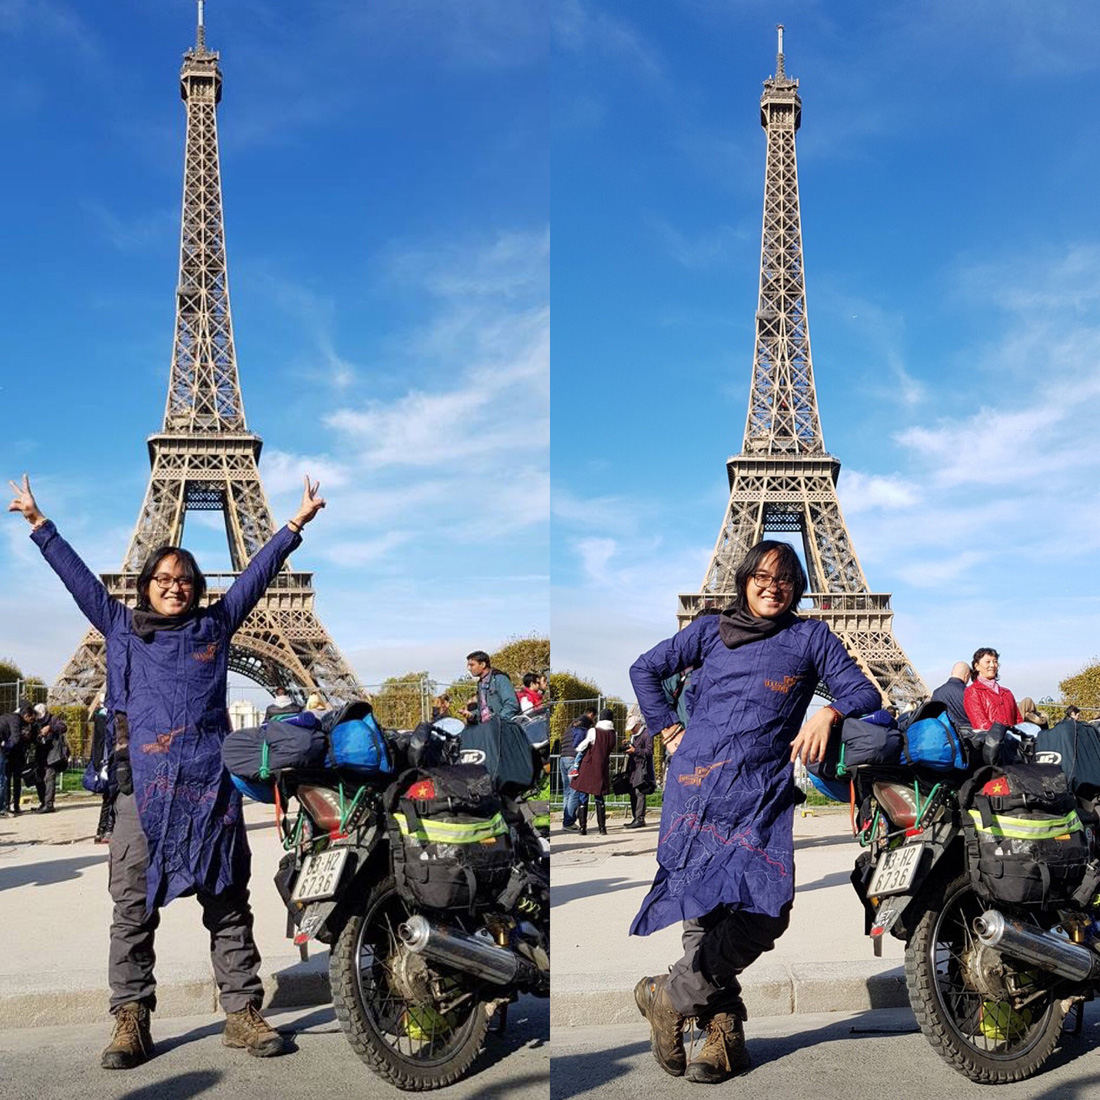 Tran Dang Dang Khoa poses with his beloved bike at The Eiffel Tower in Paris. Photo courtesy of Dang Khoa